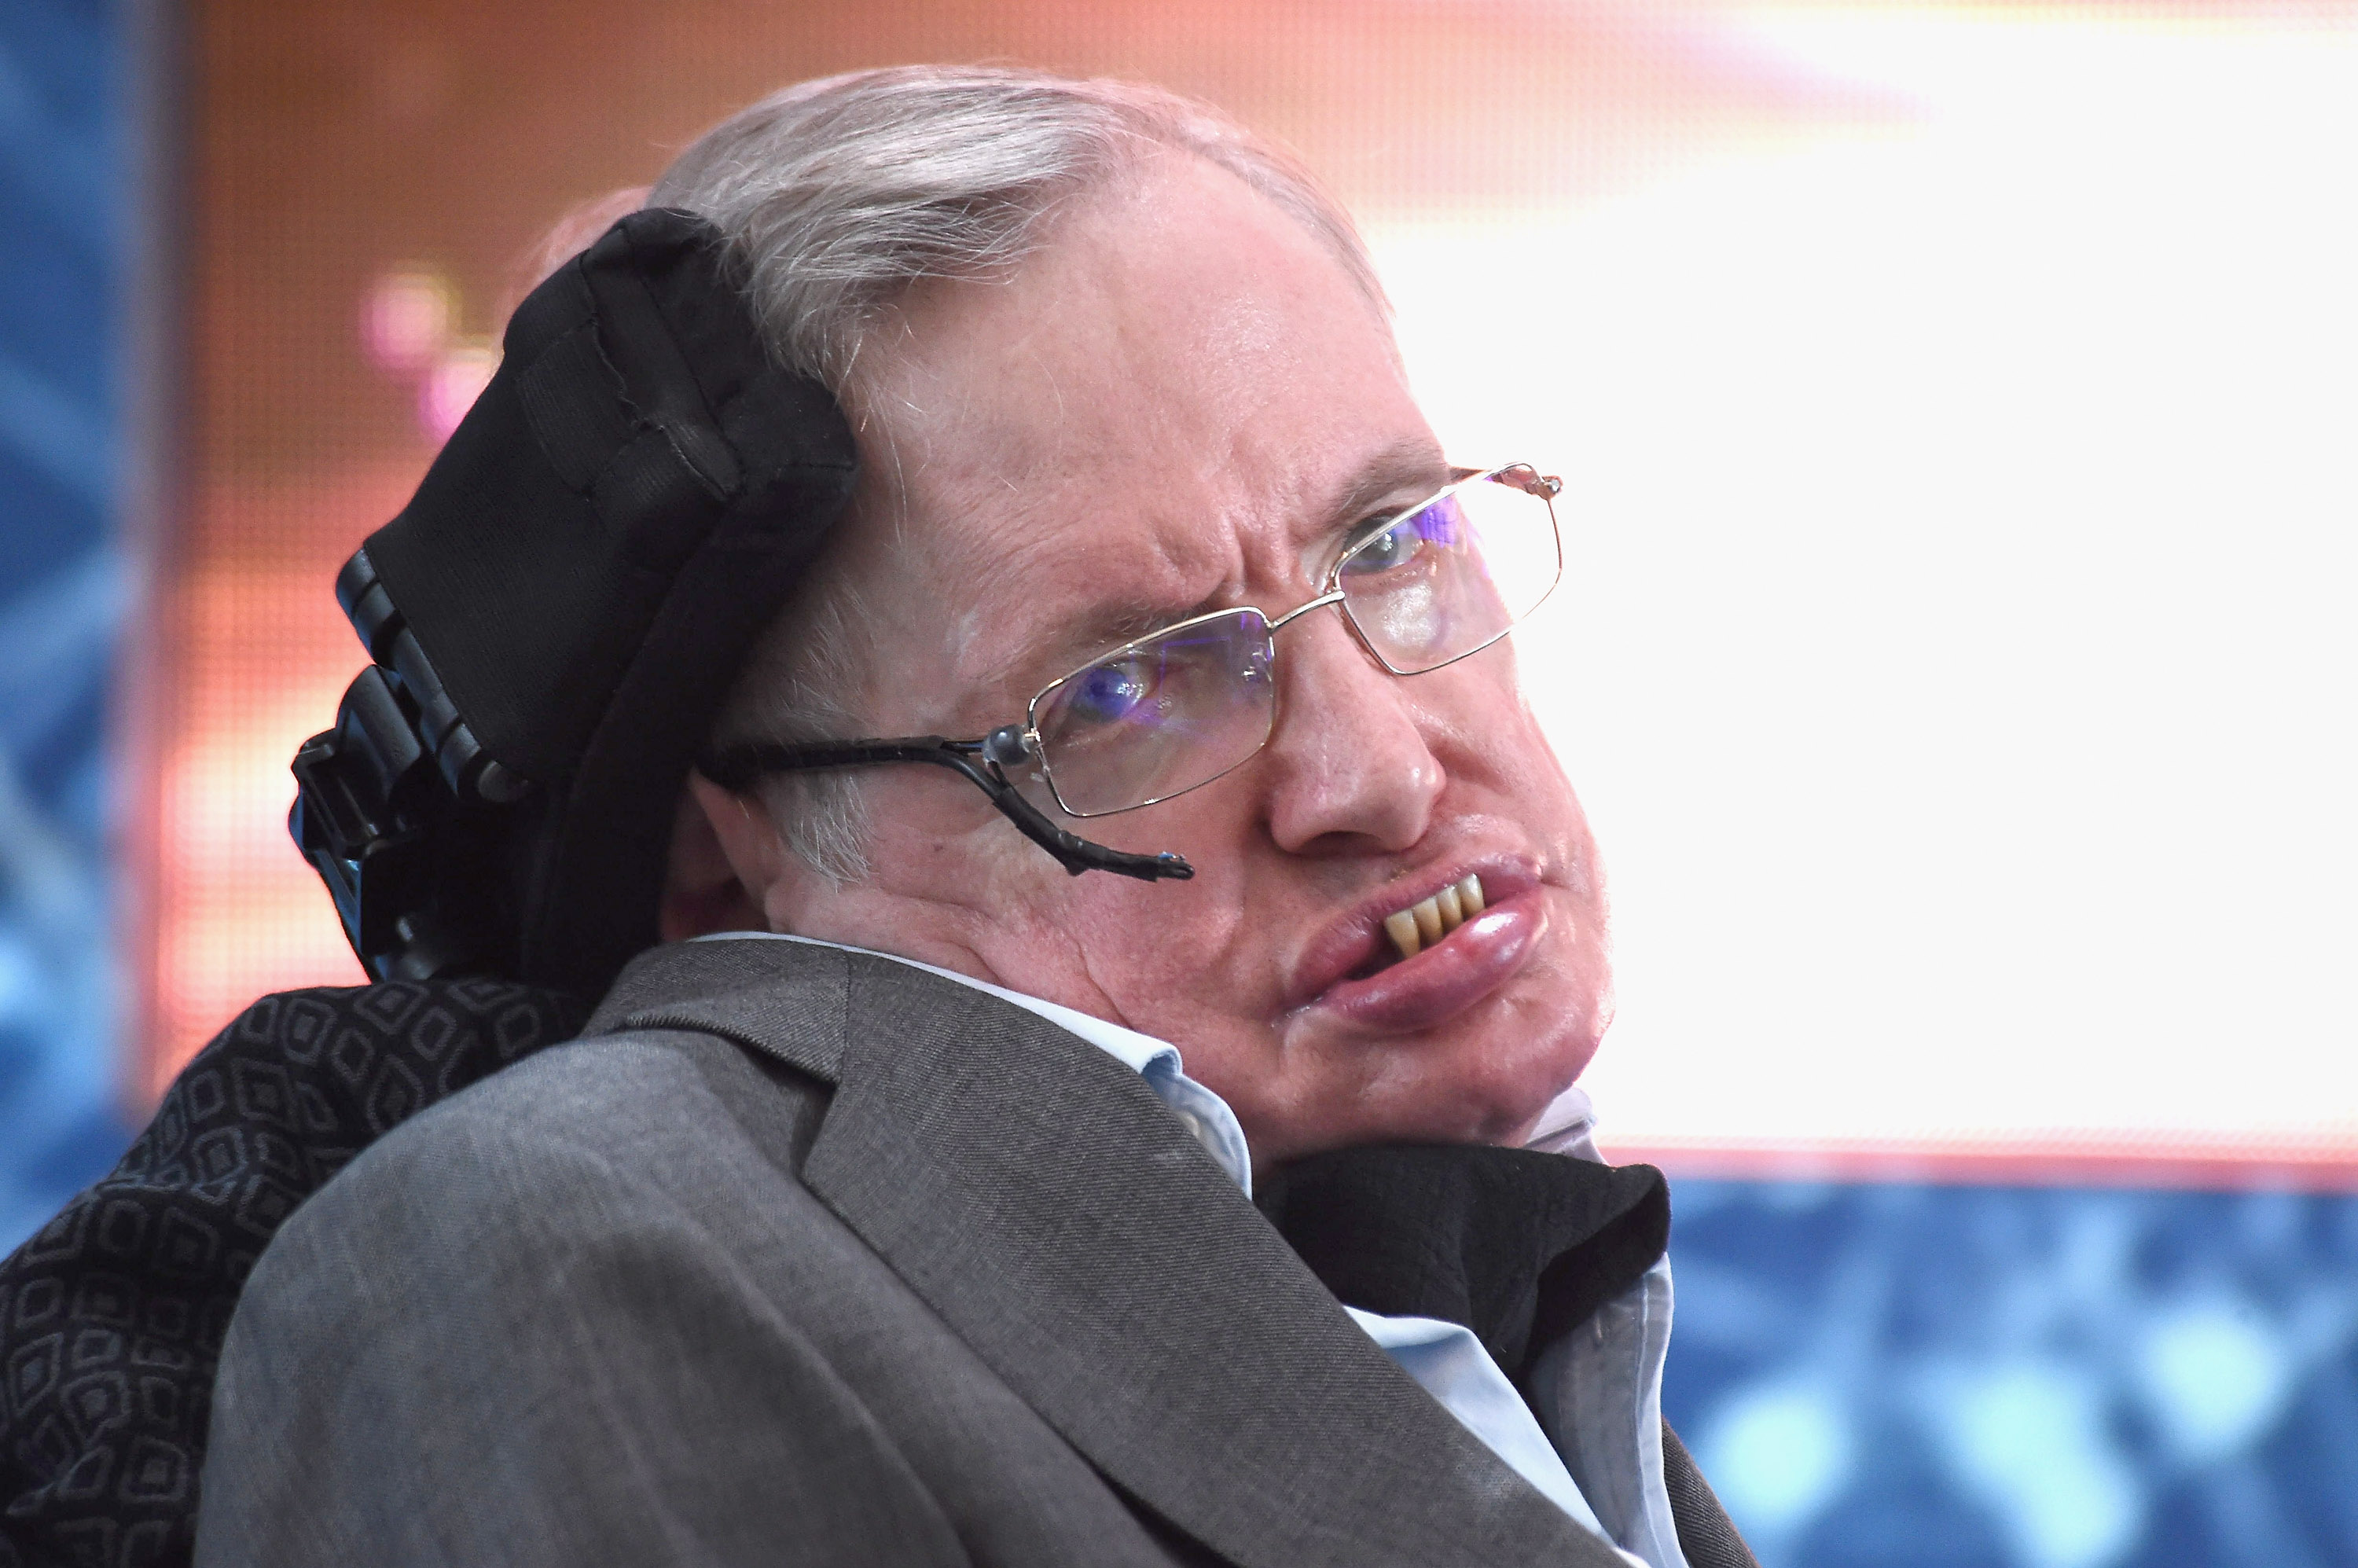 Cosmologist Stephen Hawking attends the New Space Exploration Initiative  Breakthrough Starshot  on April 12, 2016, in New York City